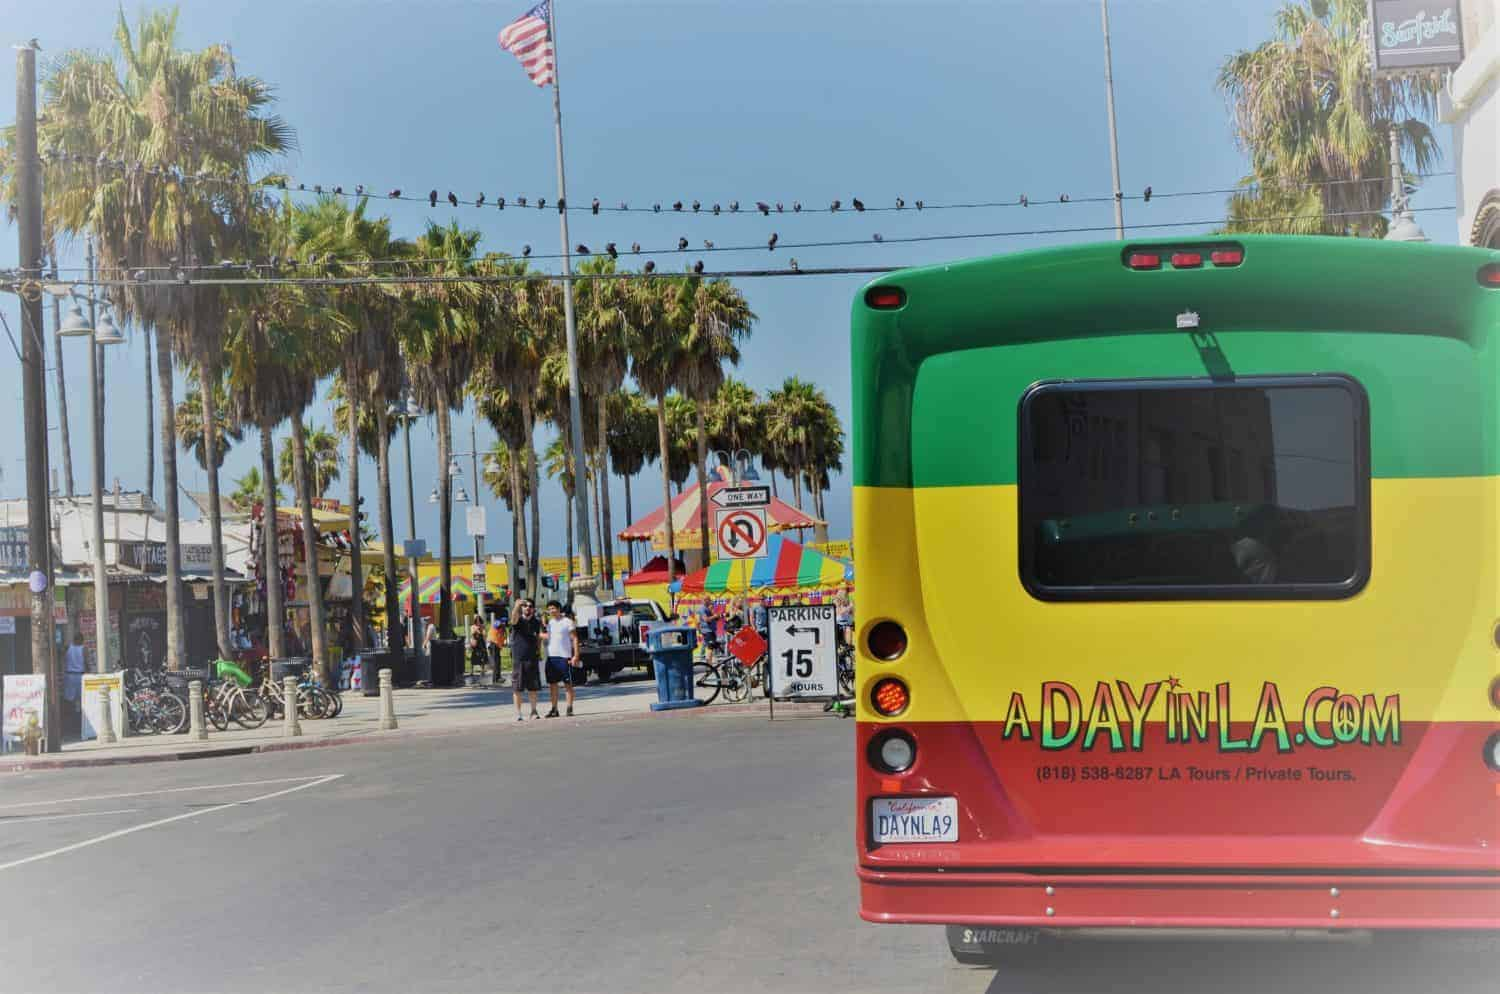 A Day in LA Tours review - RastaBus